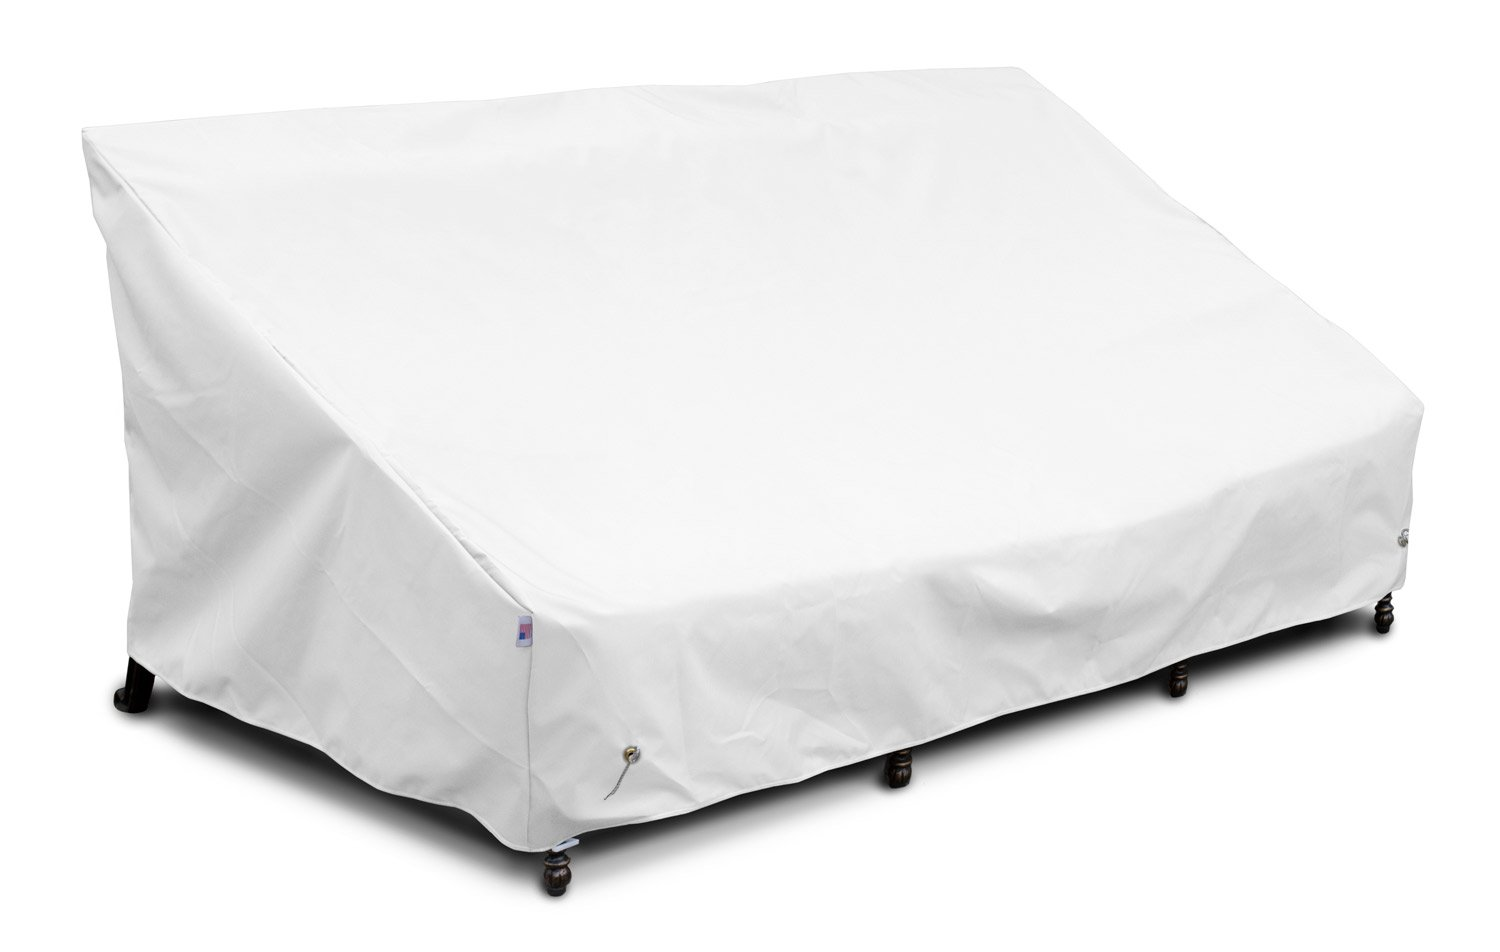 KoverRoos Weathermax 17450 Sofa Cover, 65-Inch Width by 35-Inch Diameter by 35-Inch Height, White